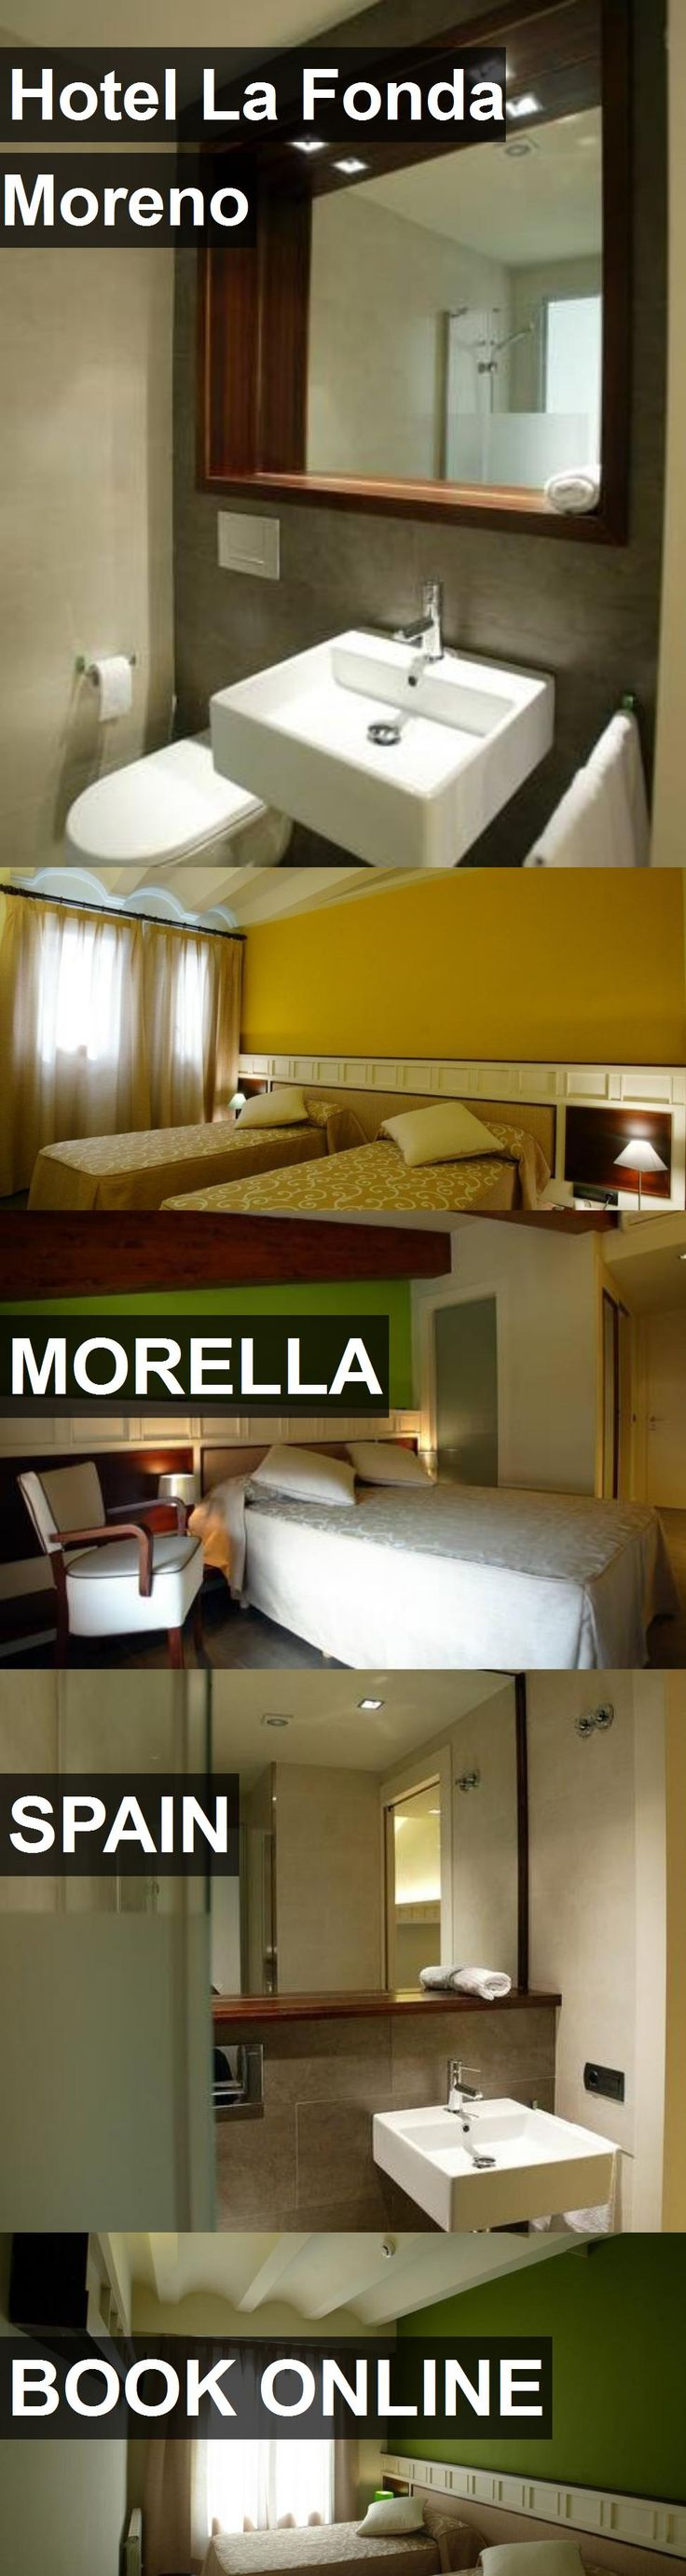 Hotel La Fonda Moreno in Morella, Spain. For more information, photos, reviews and best prices please follow the link. #Spain #Morella #travel #vacation #hotel